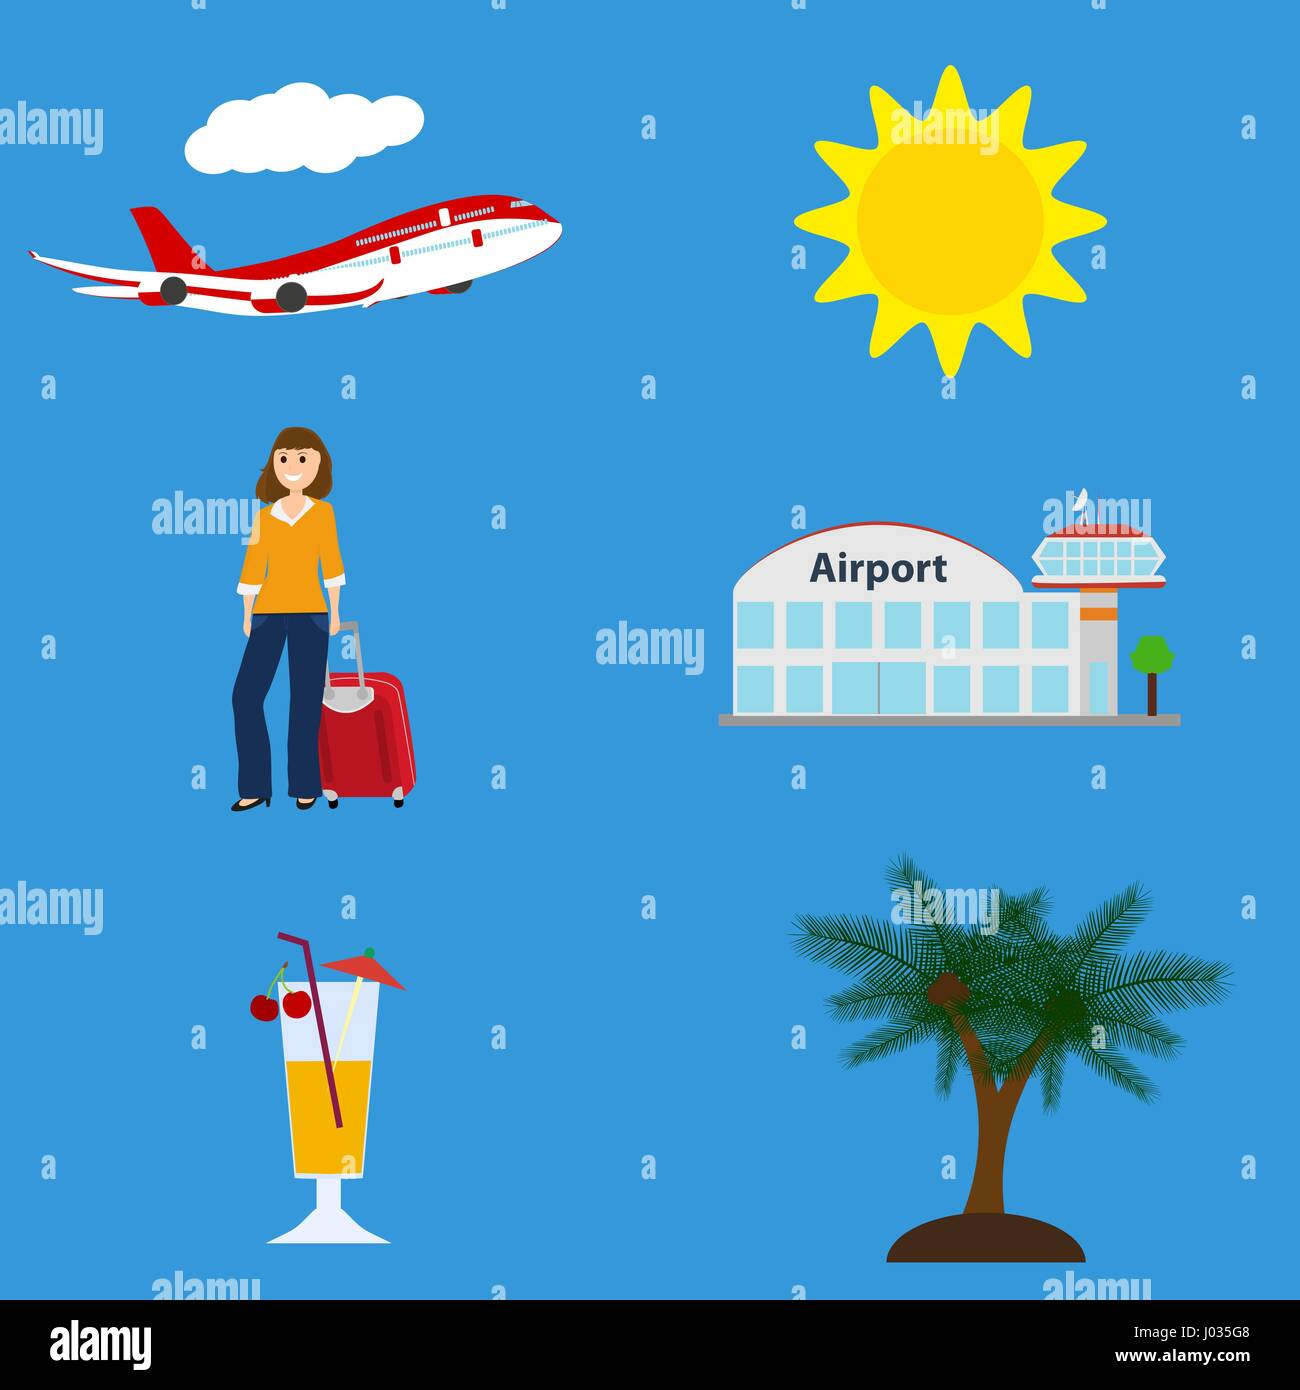 Collection of vacation symbols, airport, flying plane - Stock Image